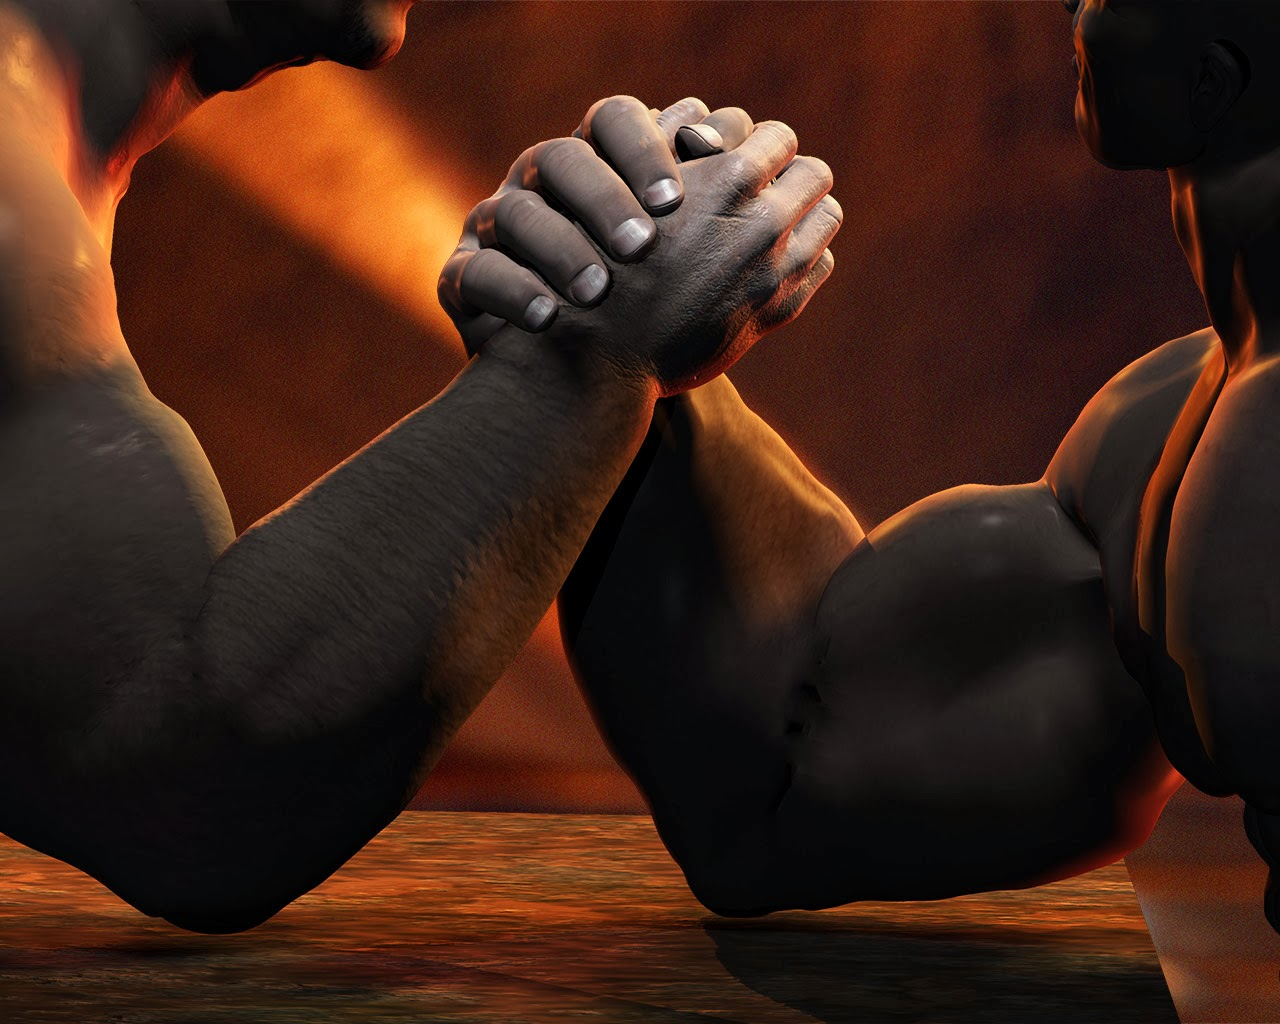 God And The Devil Arm Wrestling | www.pixshark.com ...